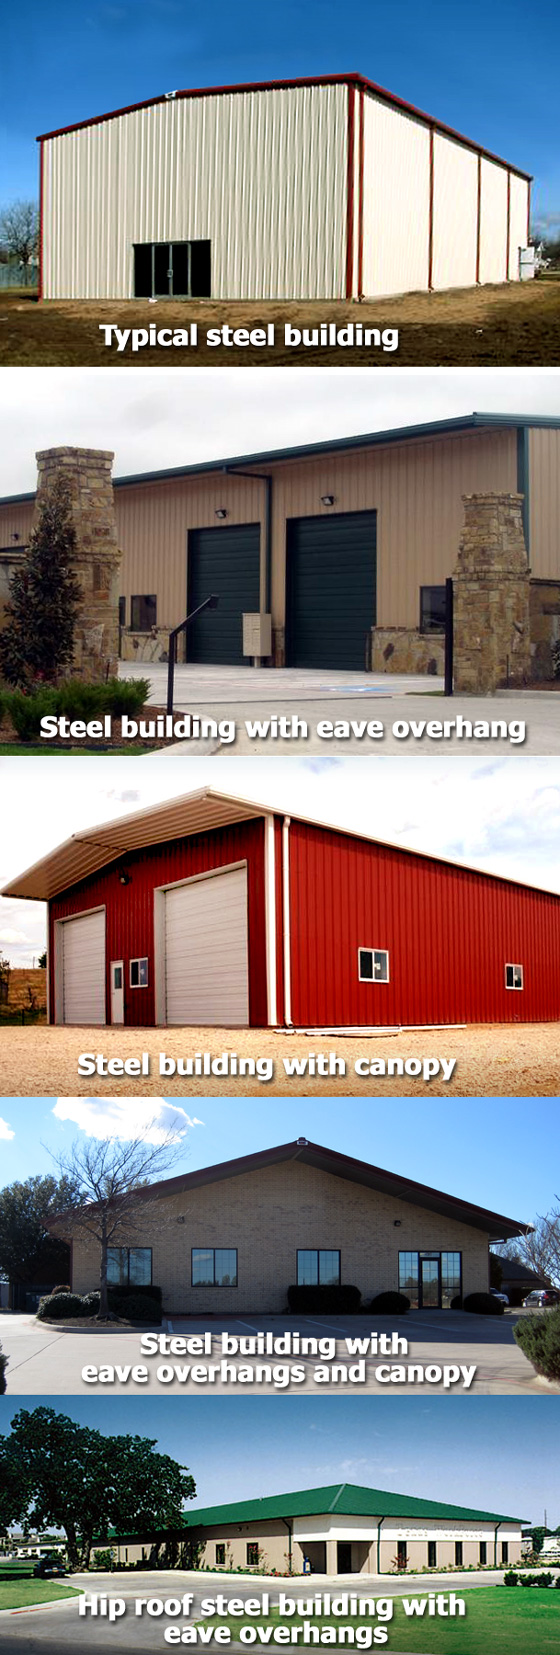 RHINO Overhangs and canopies & Steel Buildings: Think Outside the Box- Part 2 | Rooflines ...